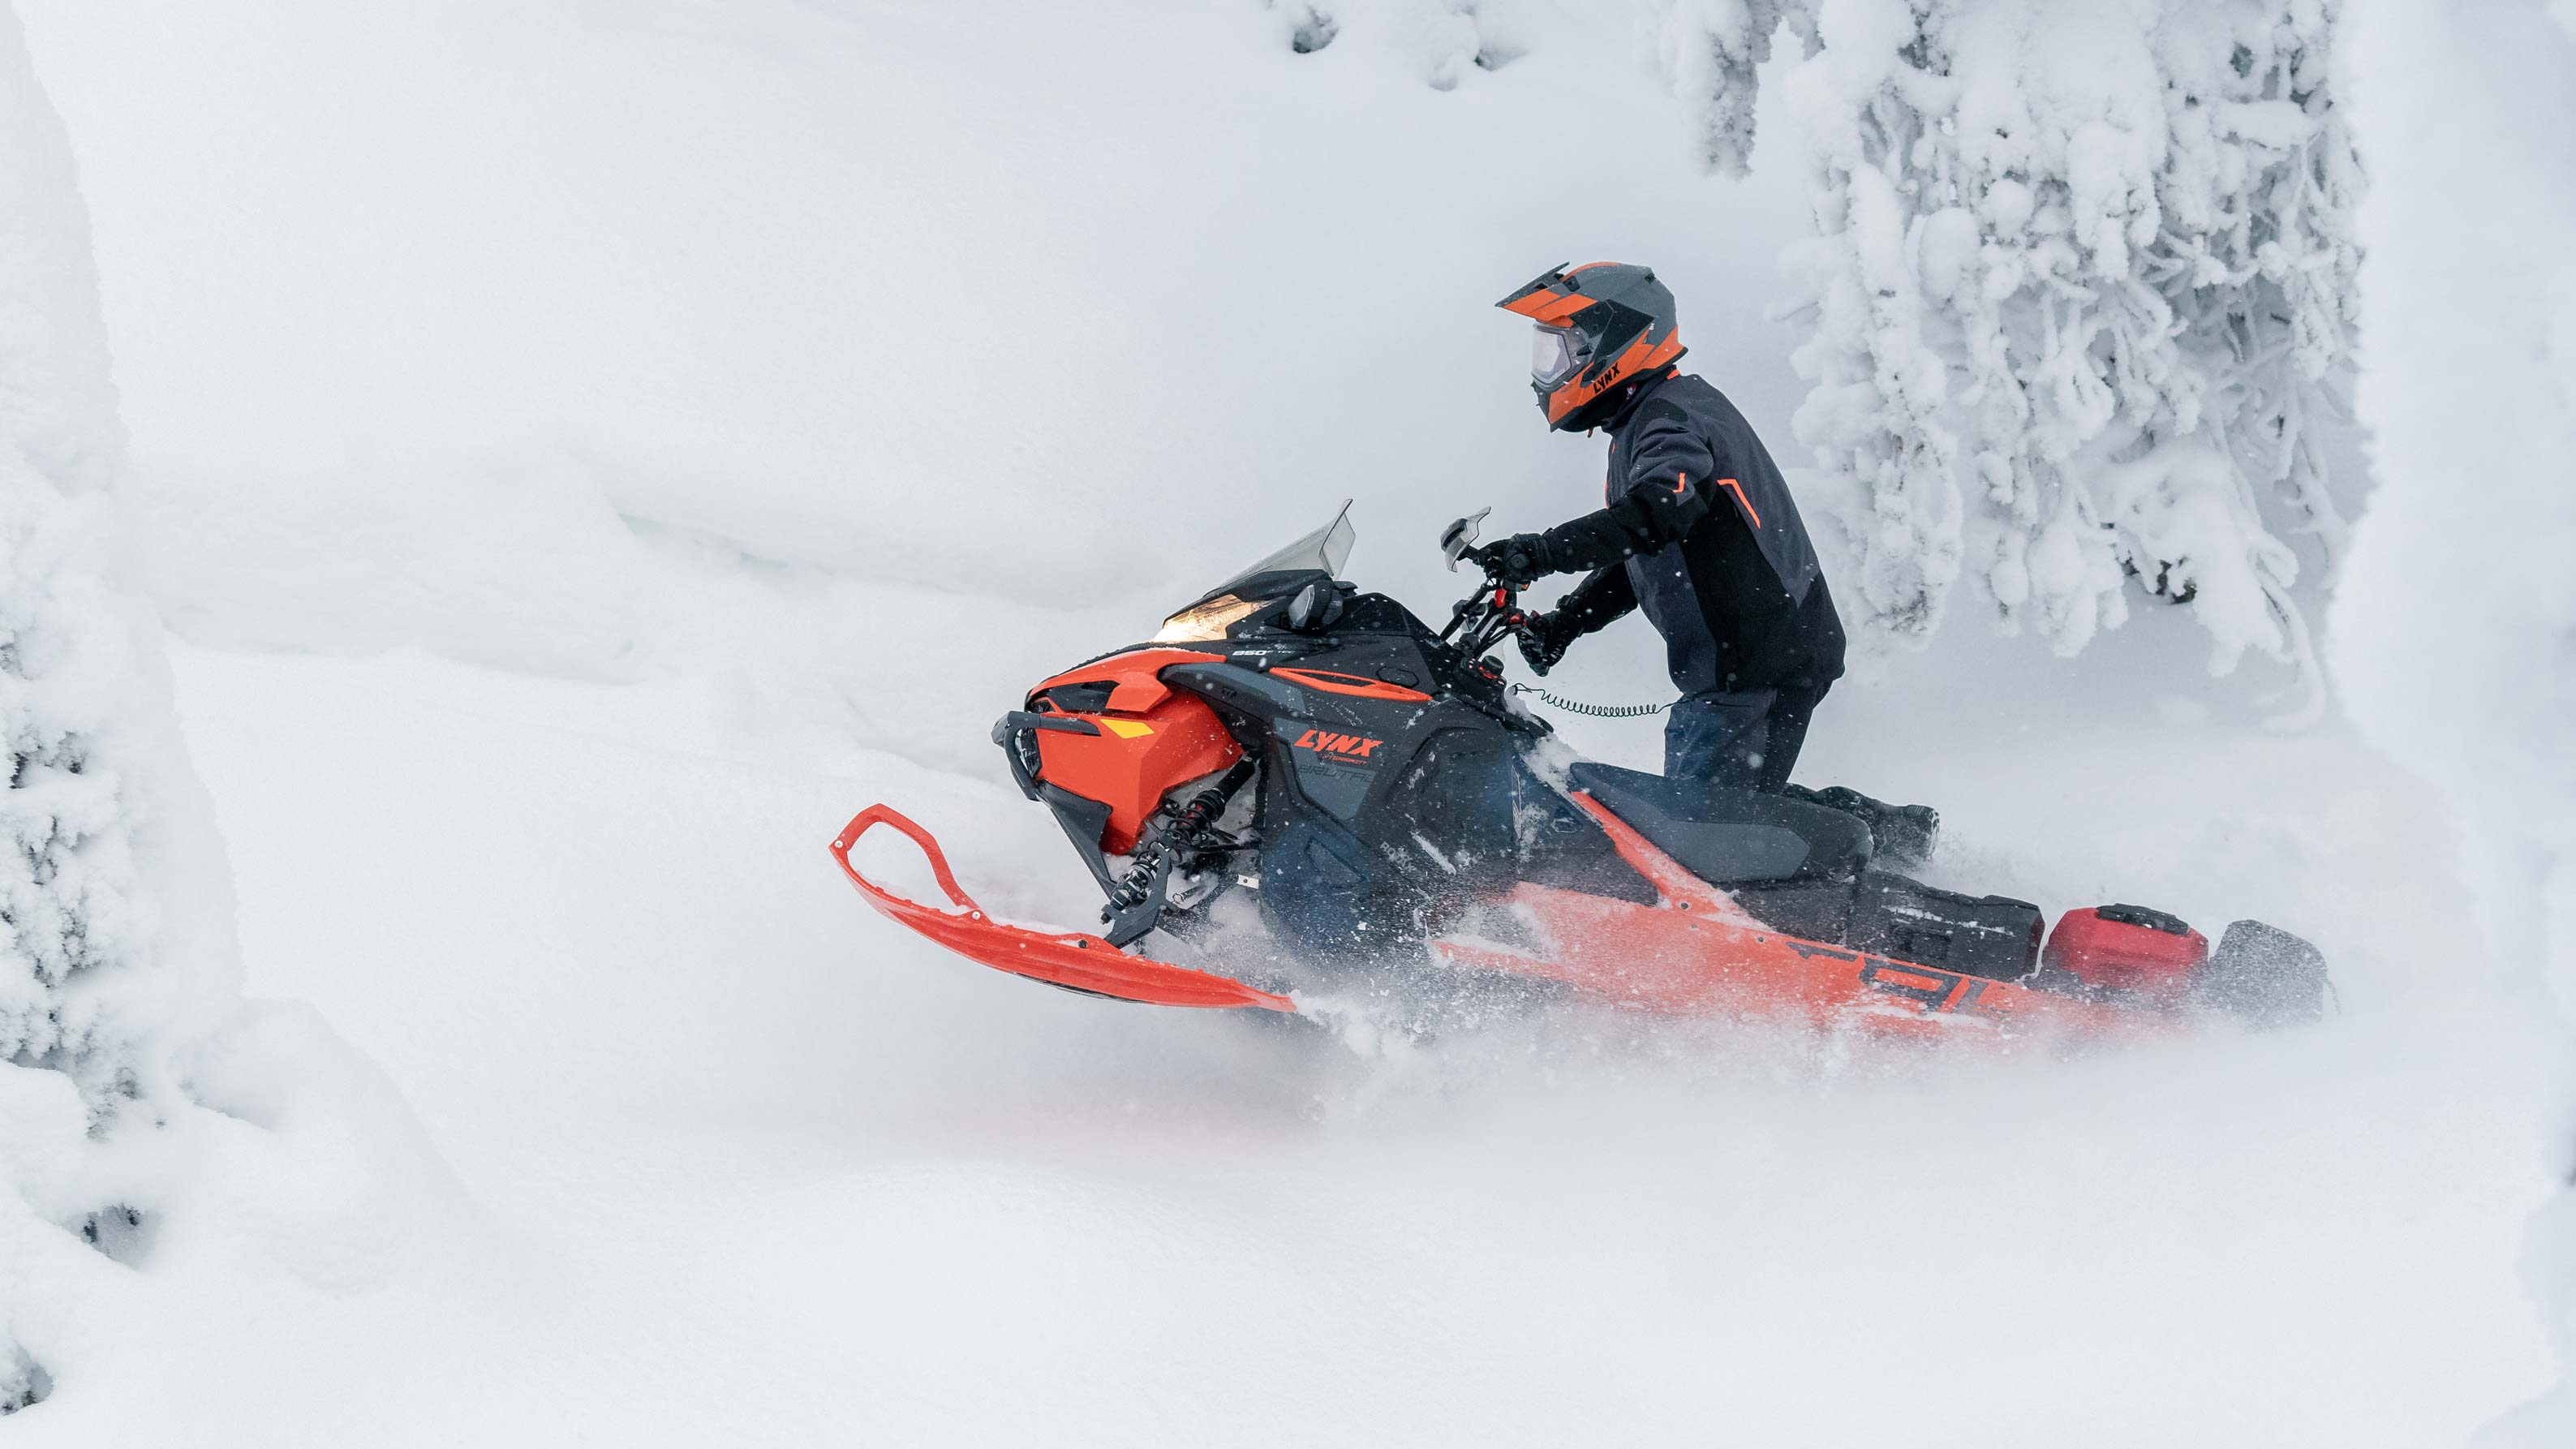 LinQ accessorized Lynx Xterrain Brutal snowmobile riding in deep snow